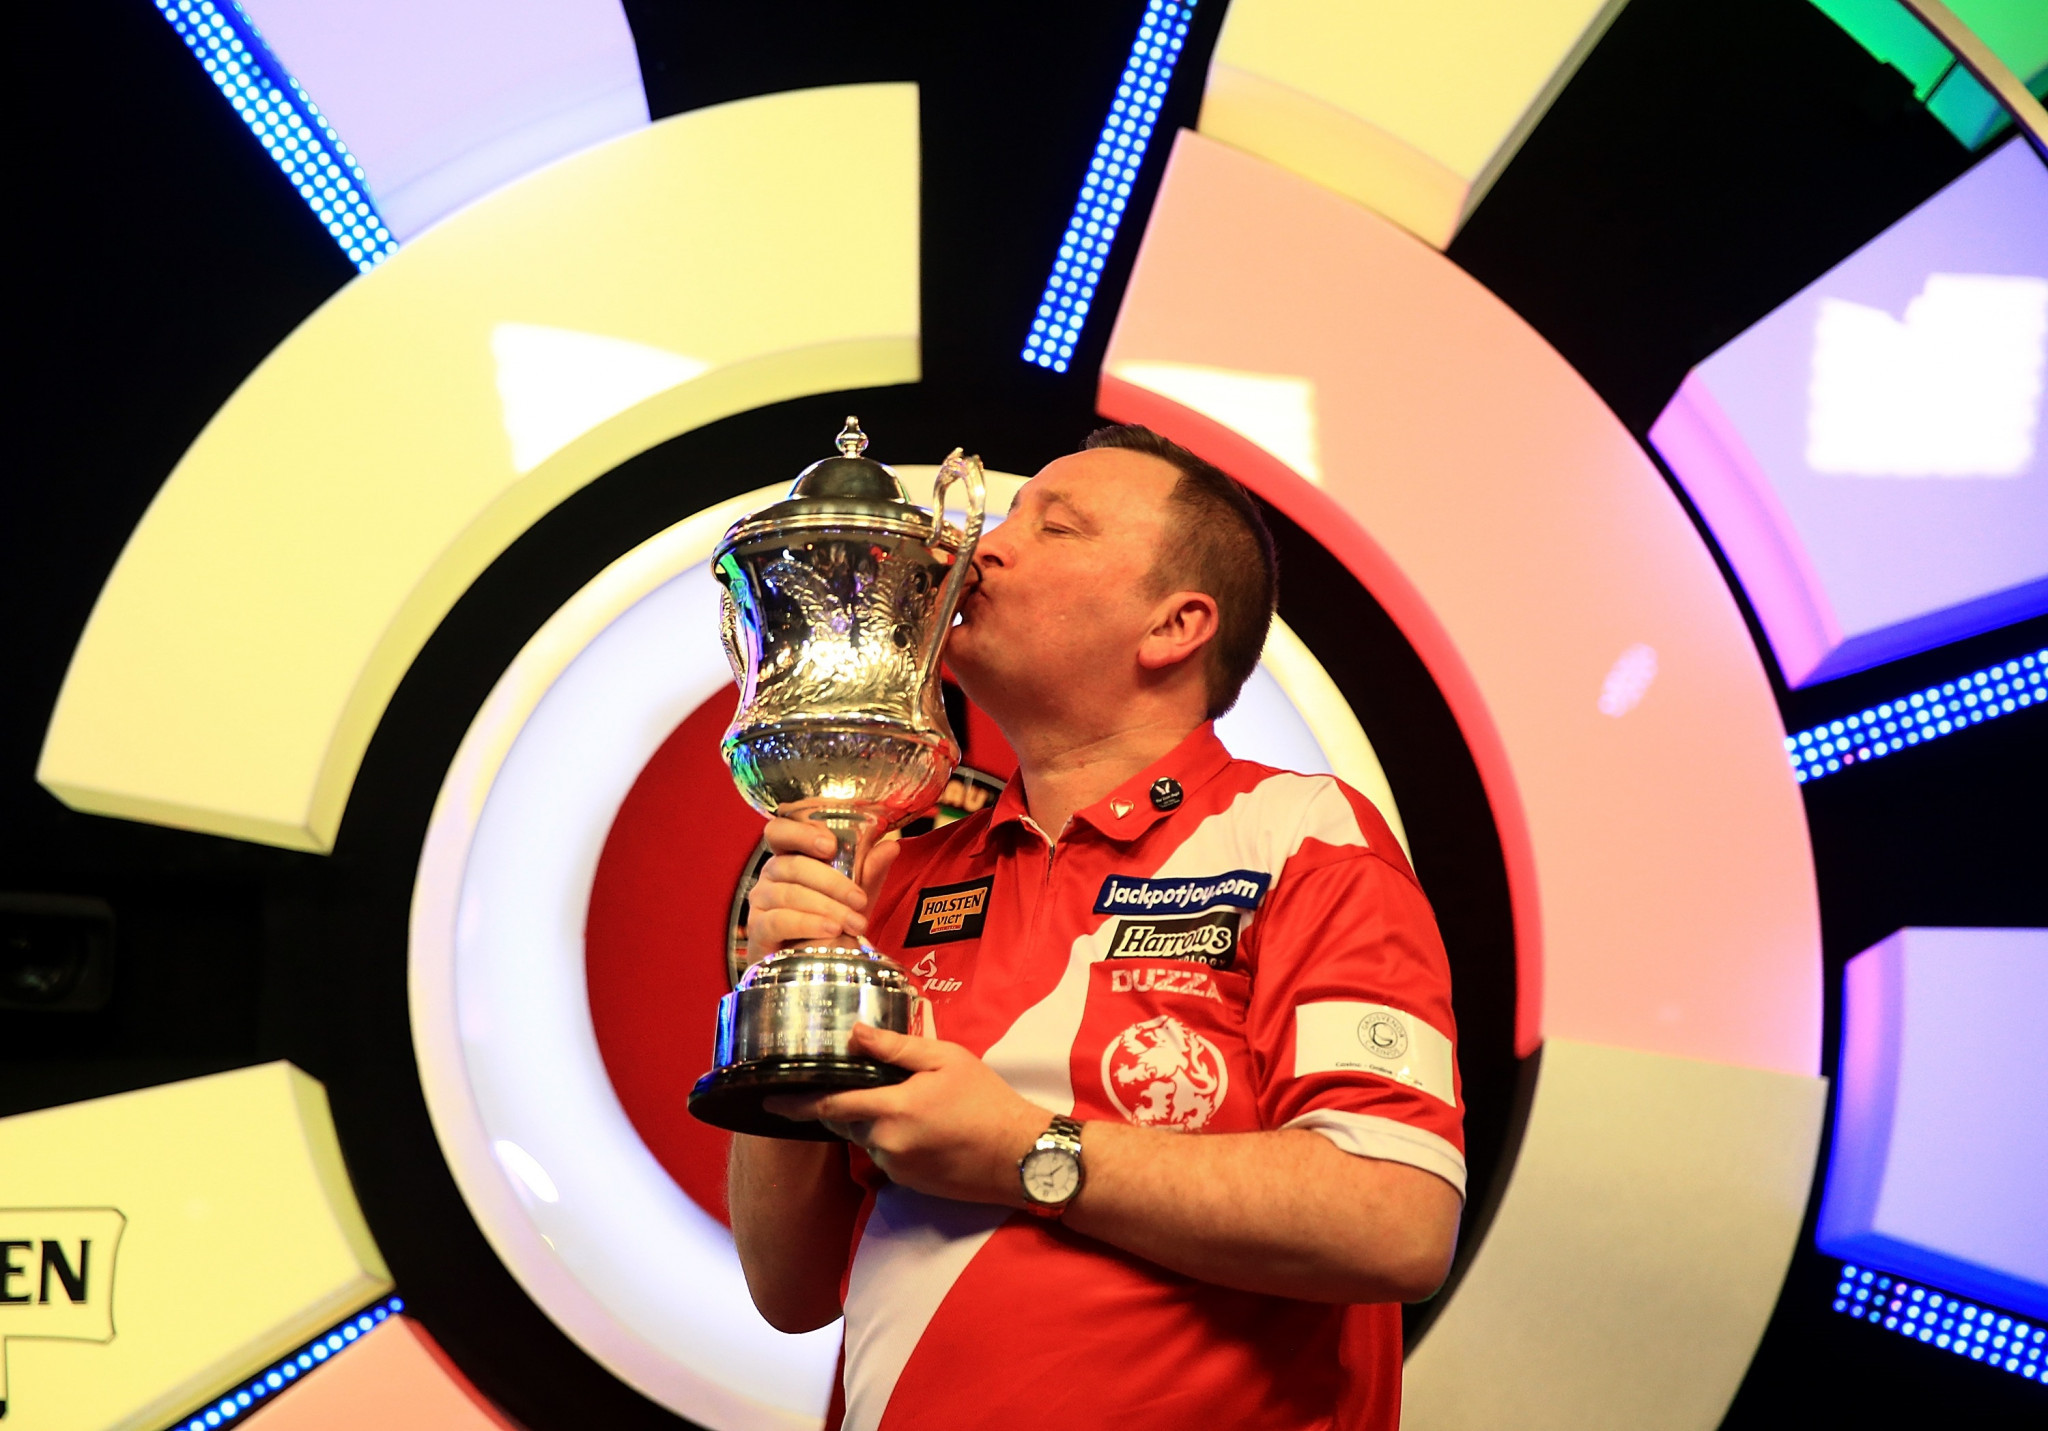 The 2018 BDO World Championship is due to begin tomorrow with Glen Durrant looking to defend the men's title ©Getty Images